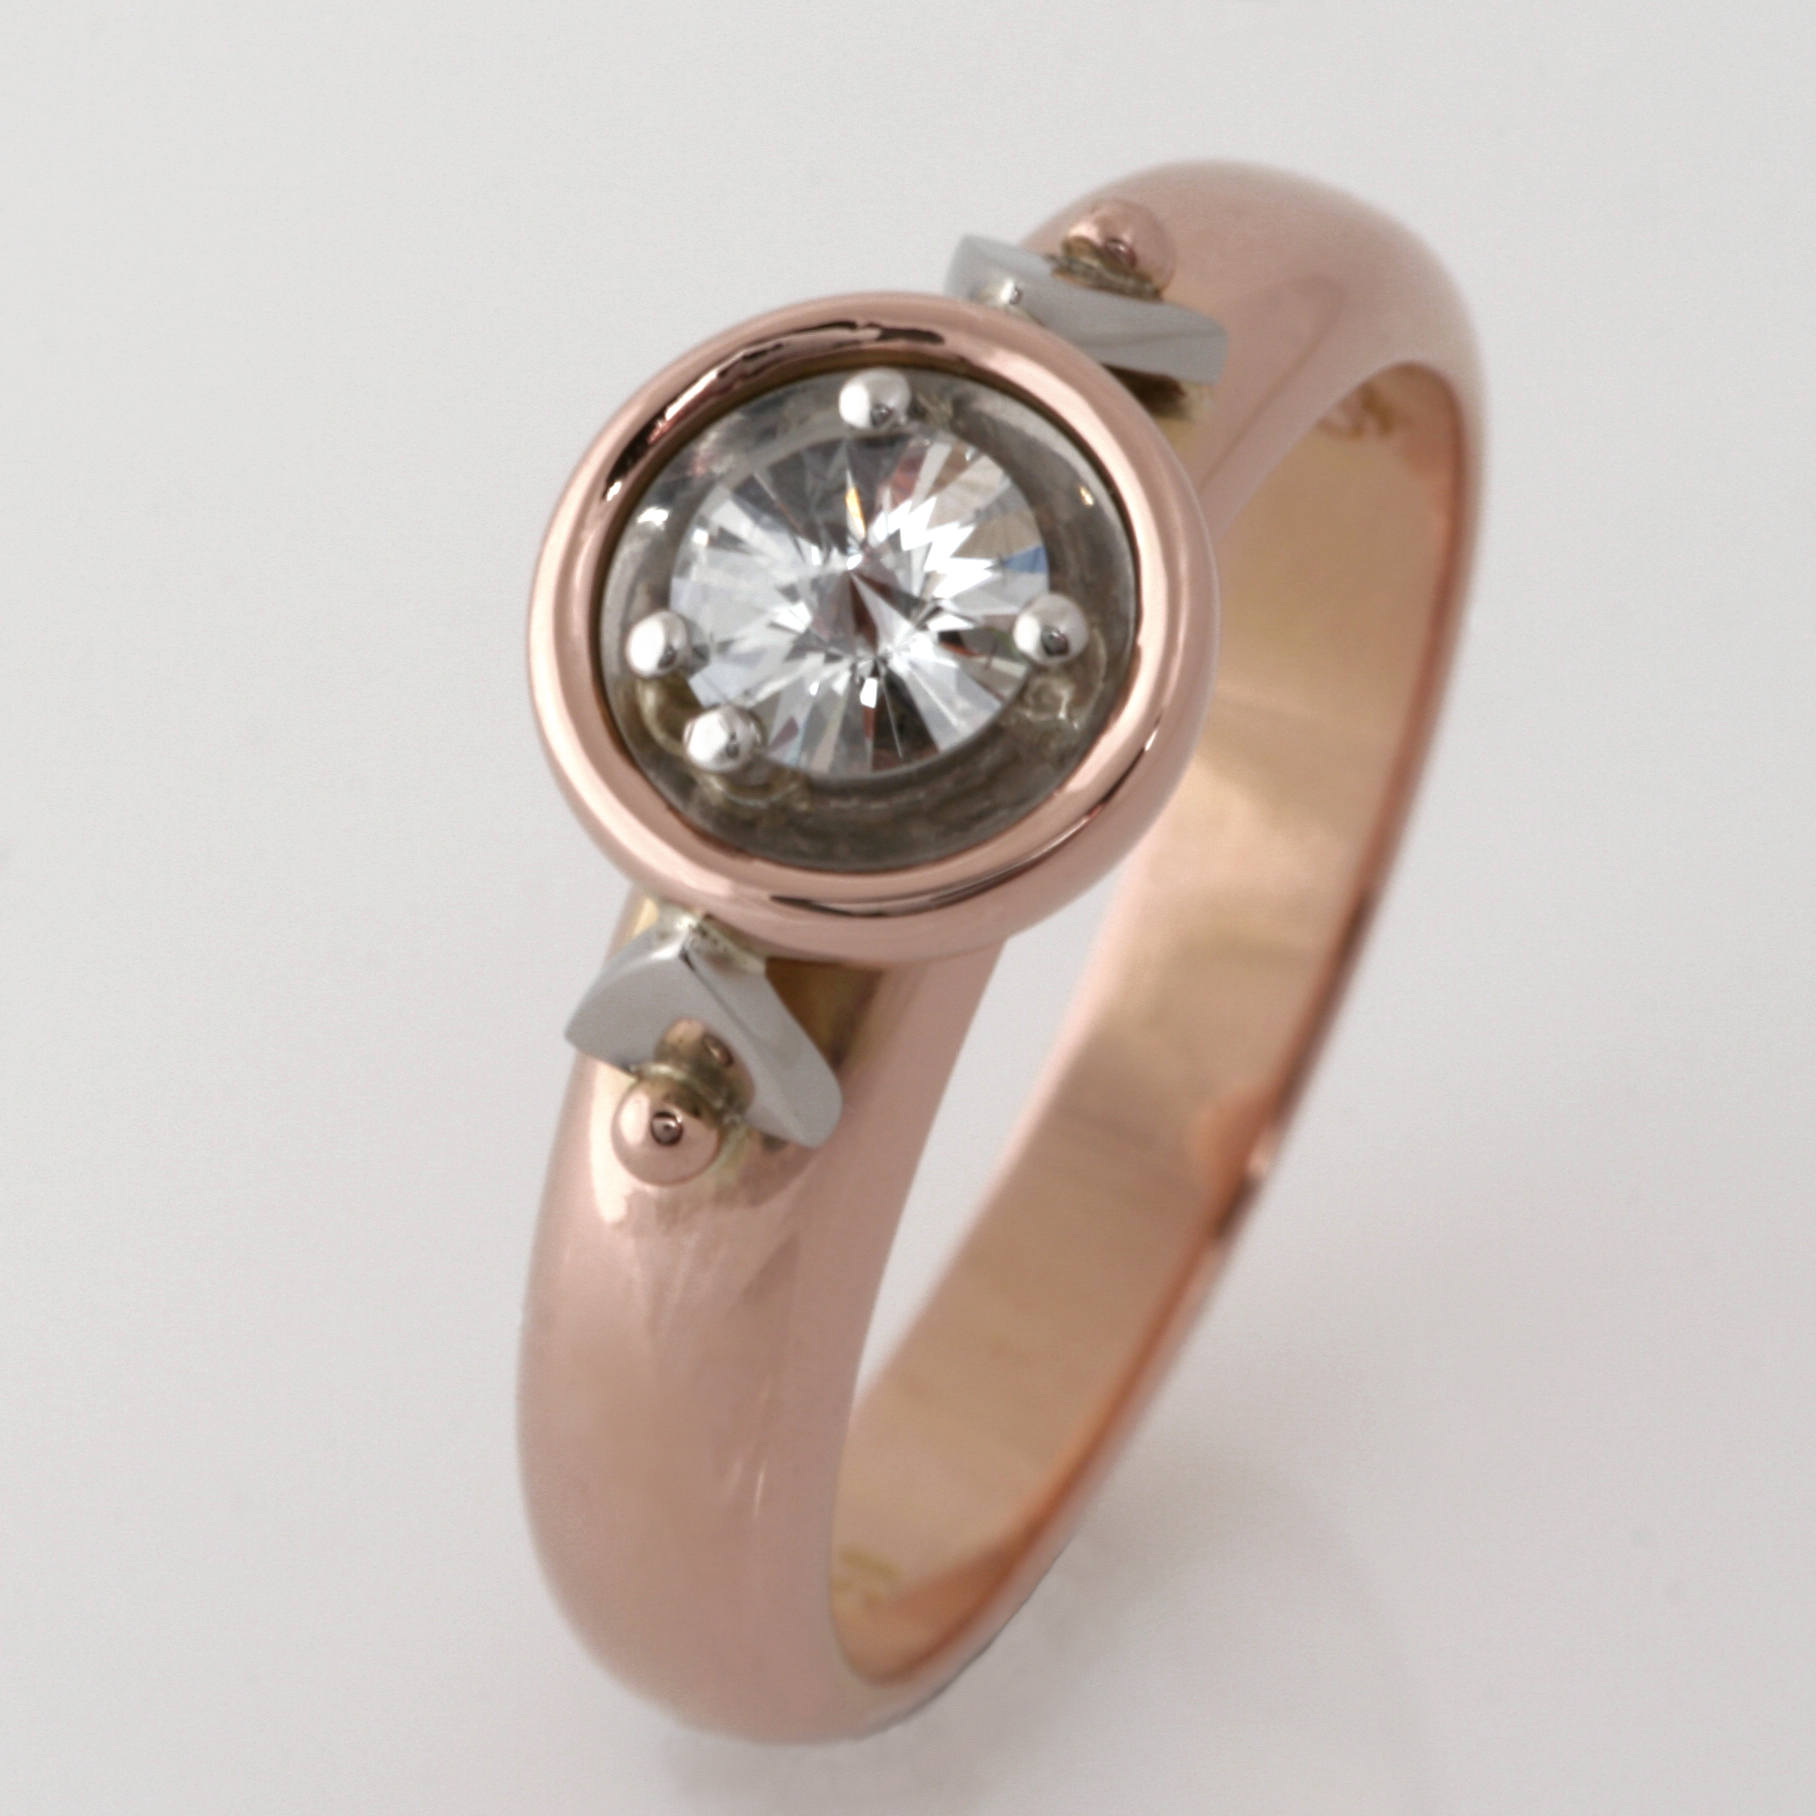 Handmade ladies 18ct rose gold and palladium 'Spirit' cut diamond engagement ring